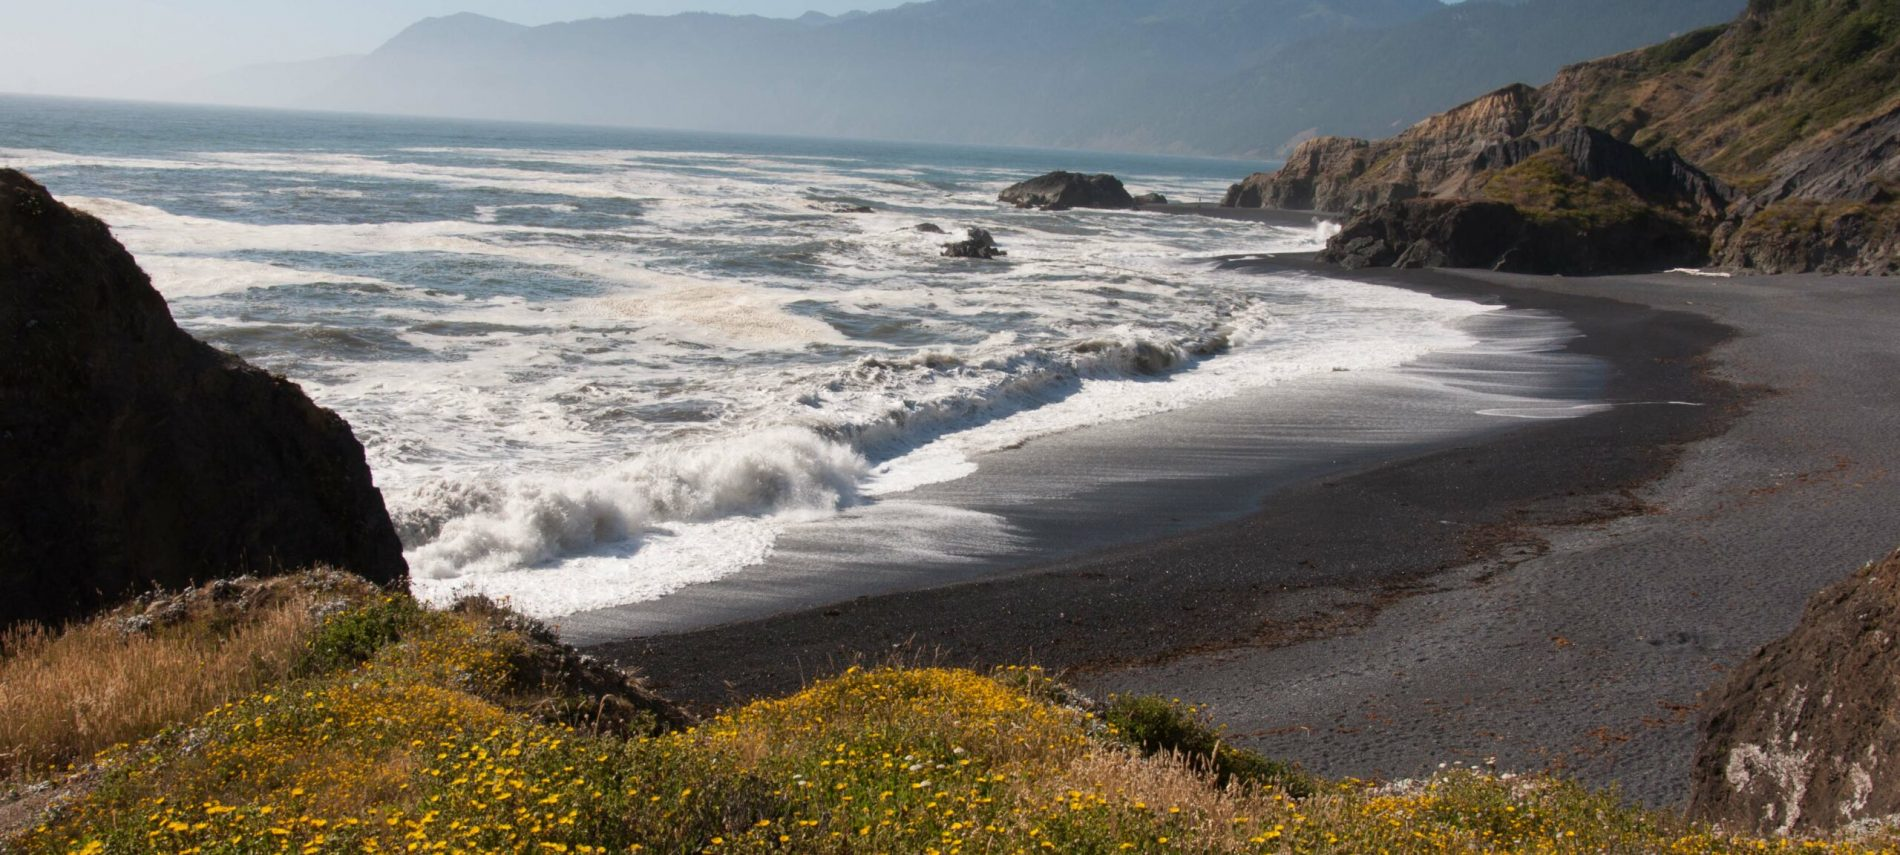 view from hill of black sands beach with surf crashing and silhouette of mountains in background